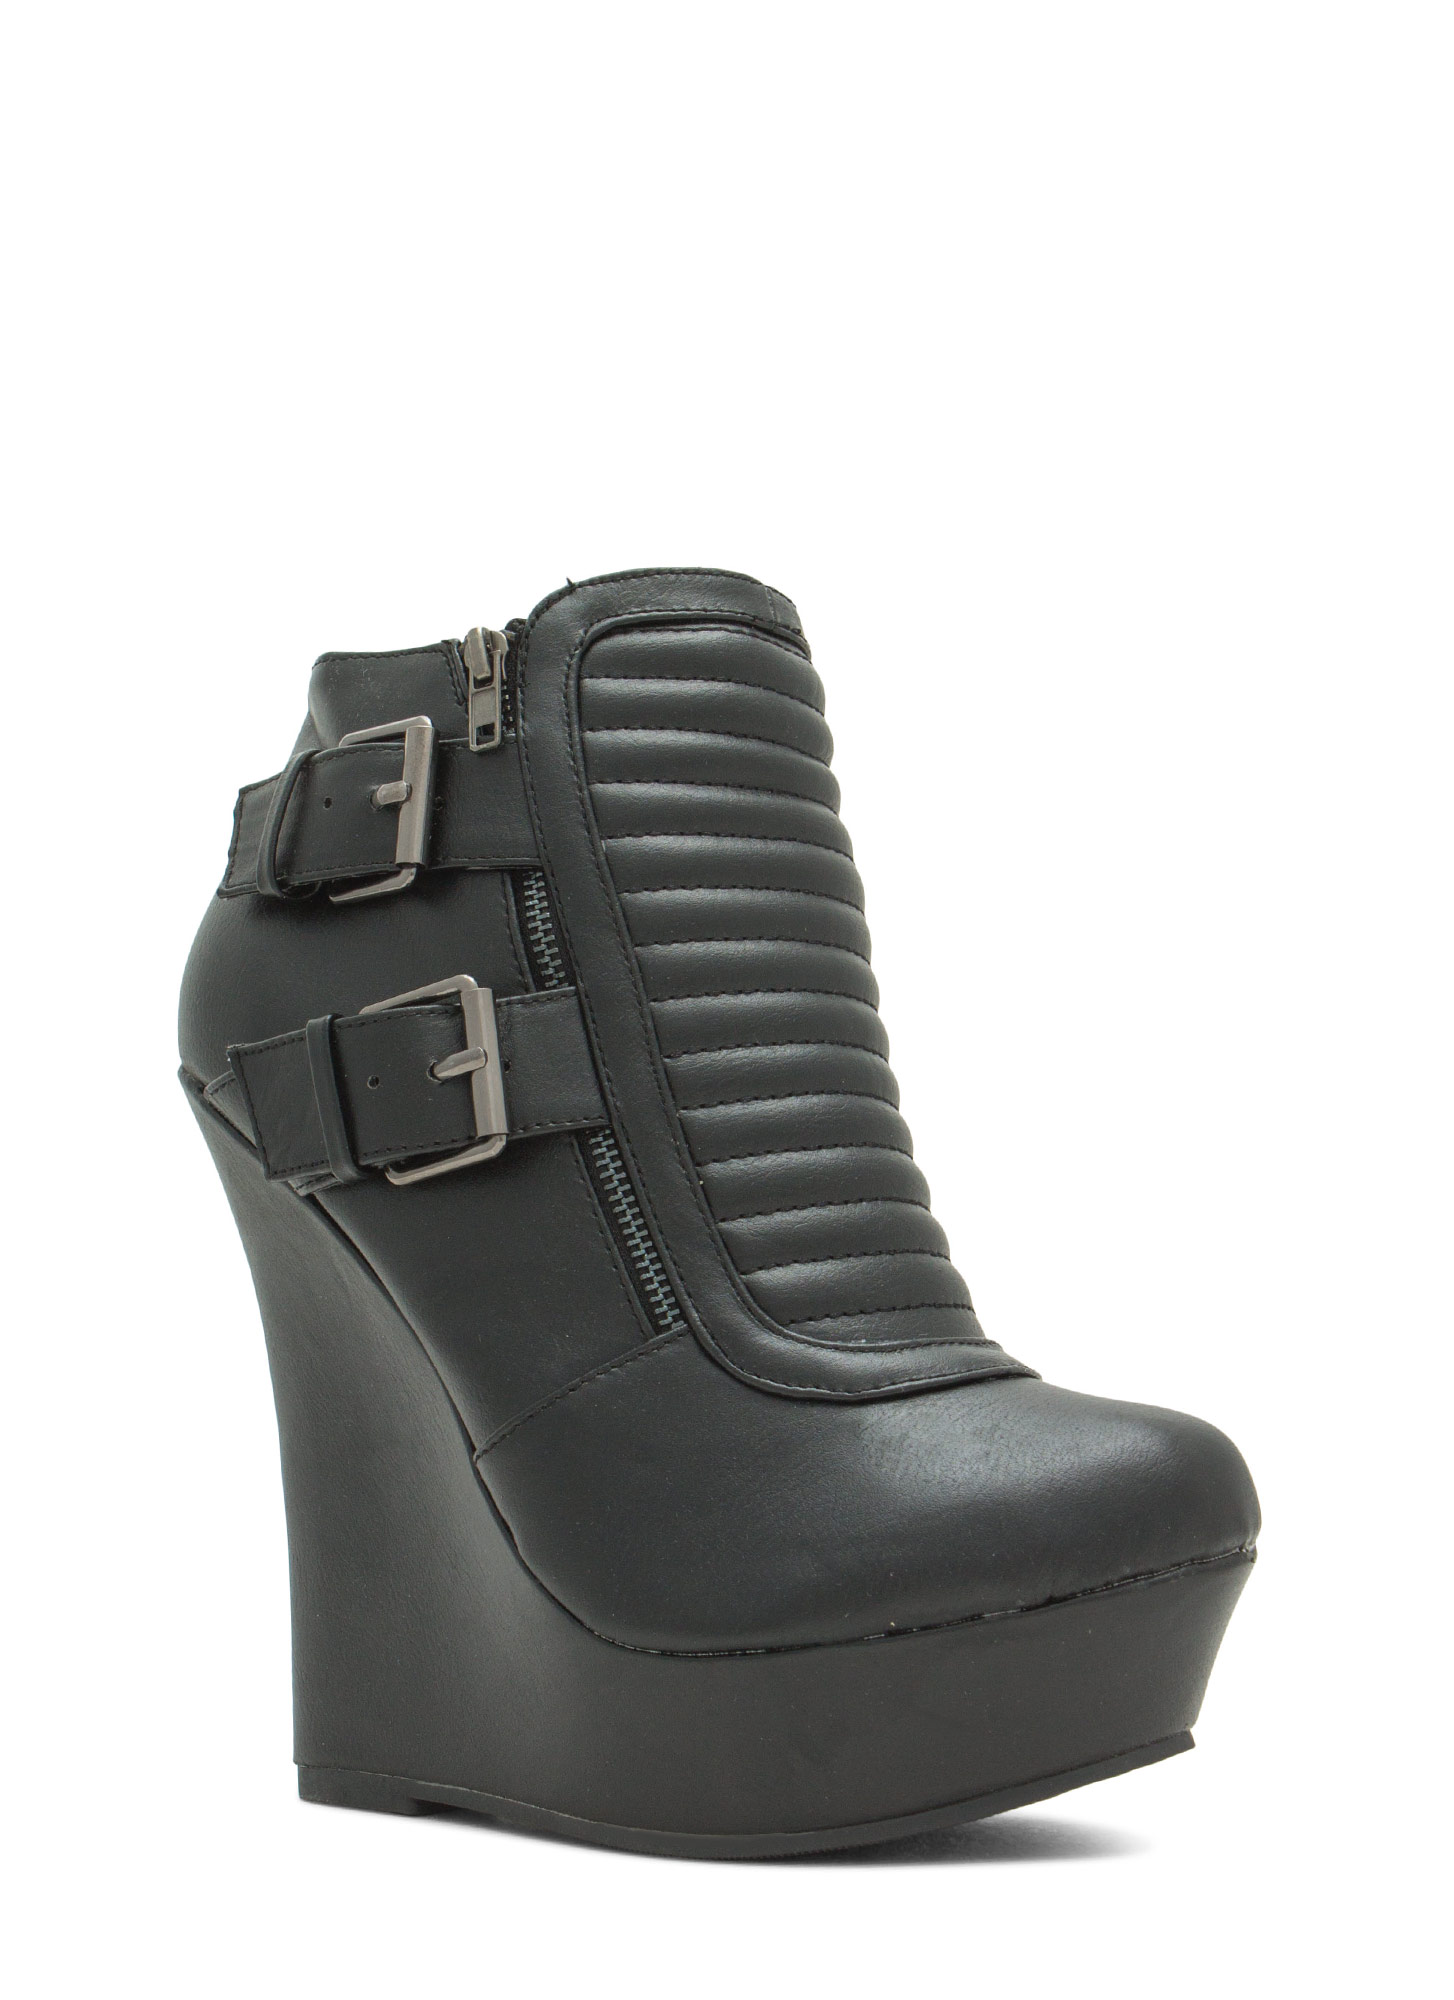 Stitched Moto Buckled Wedge Booties BLACK